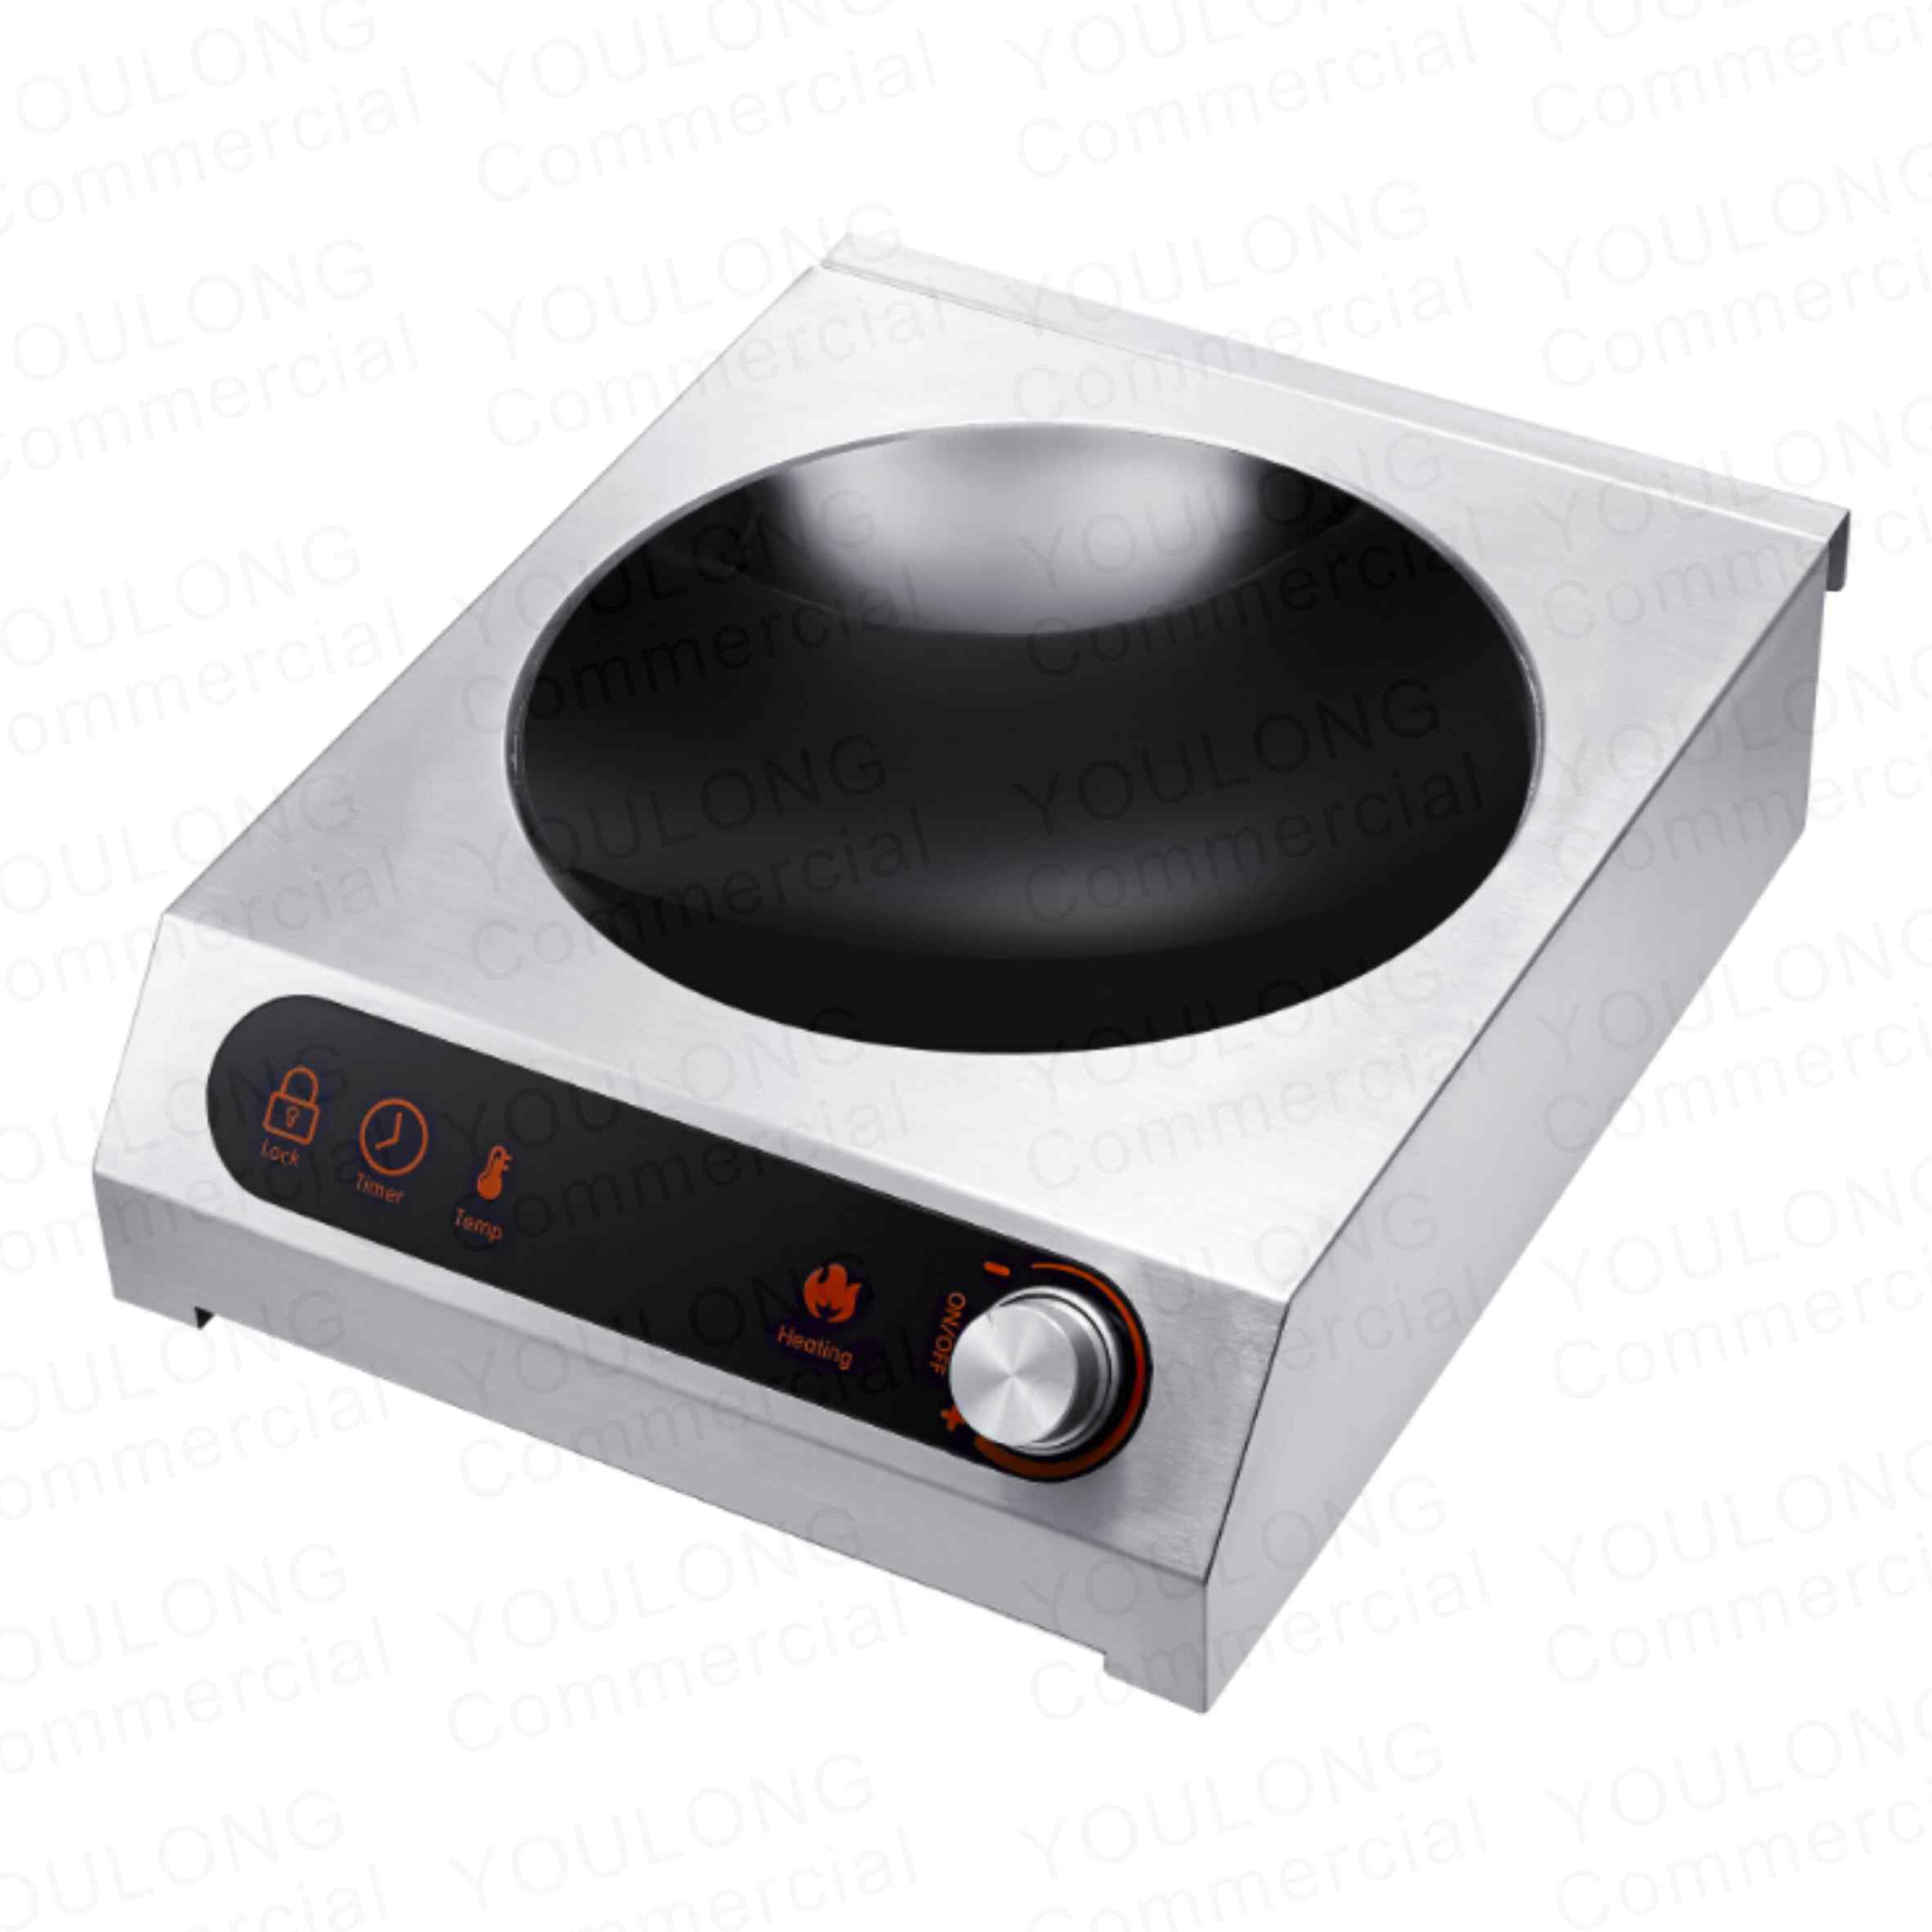 induction cooker C3501-SKW Touch and Knob Control